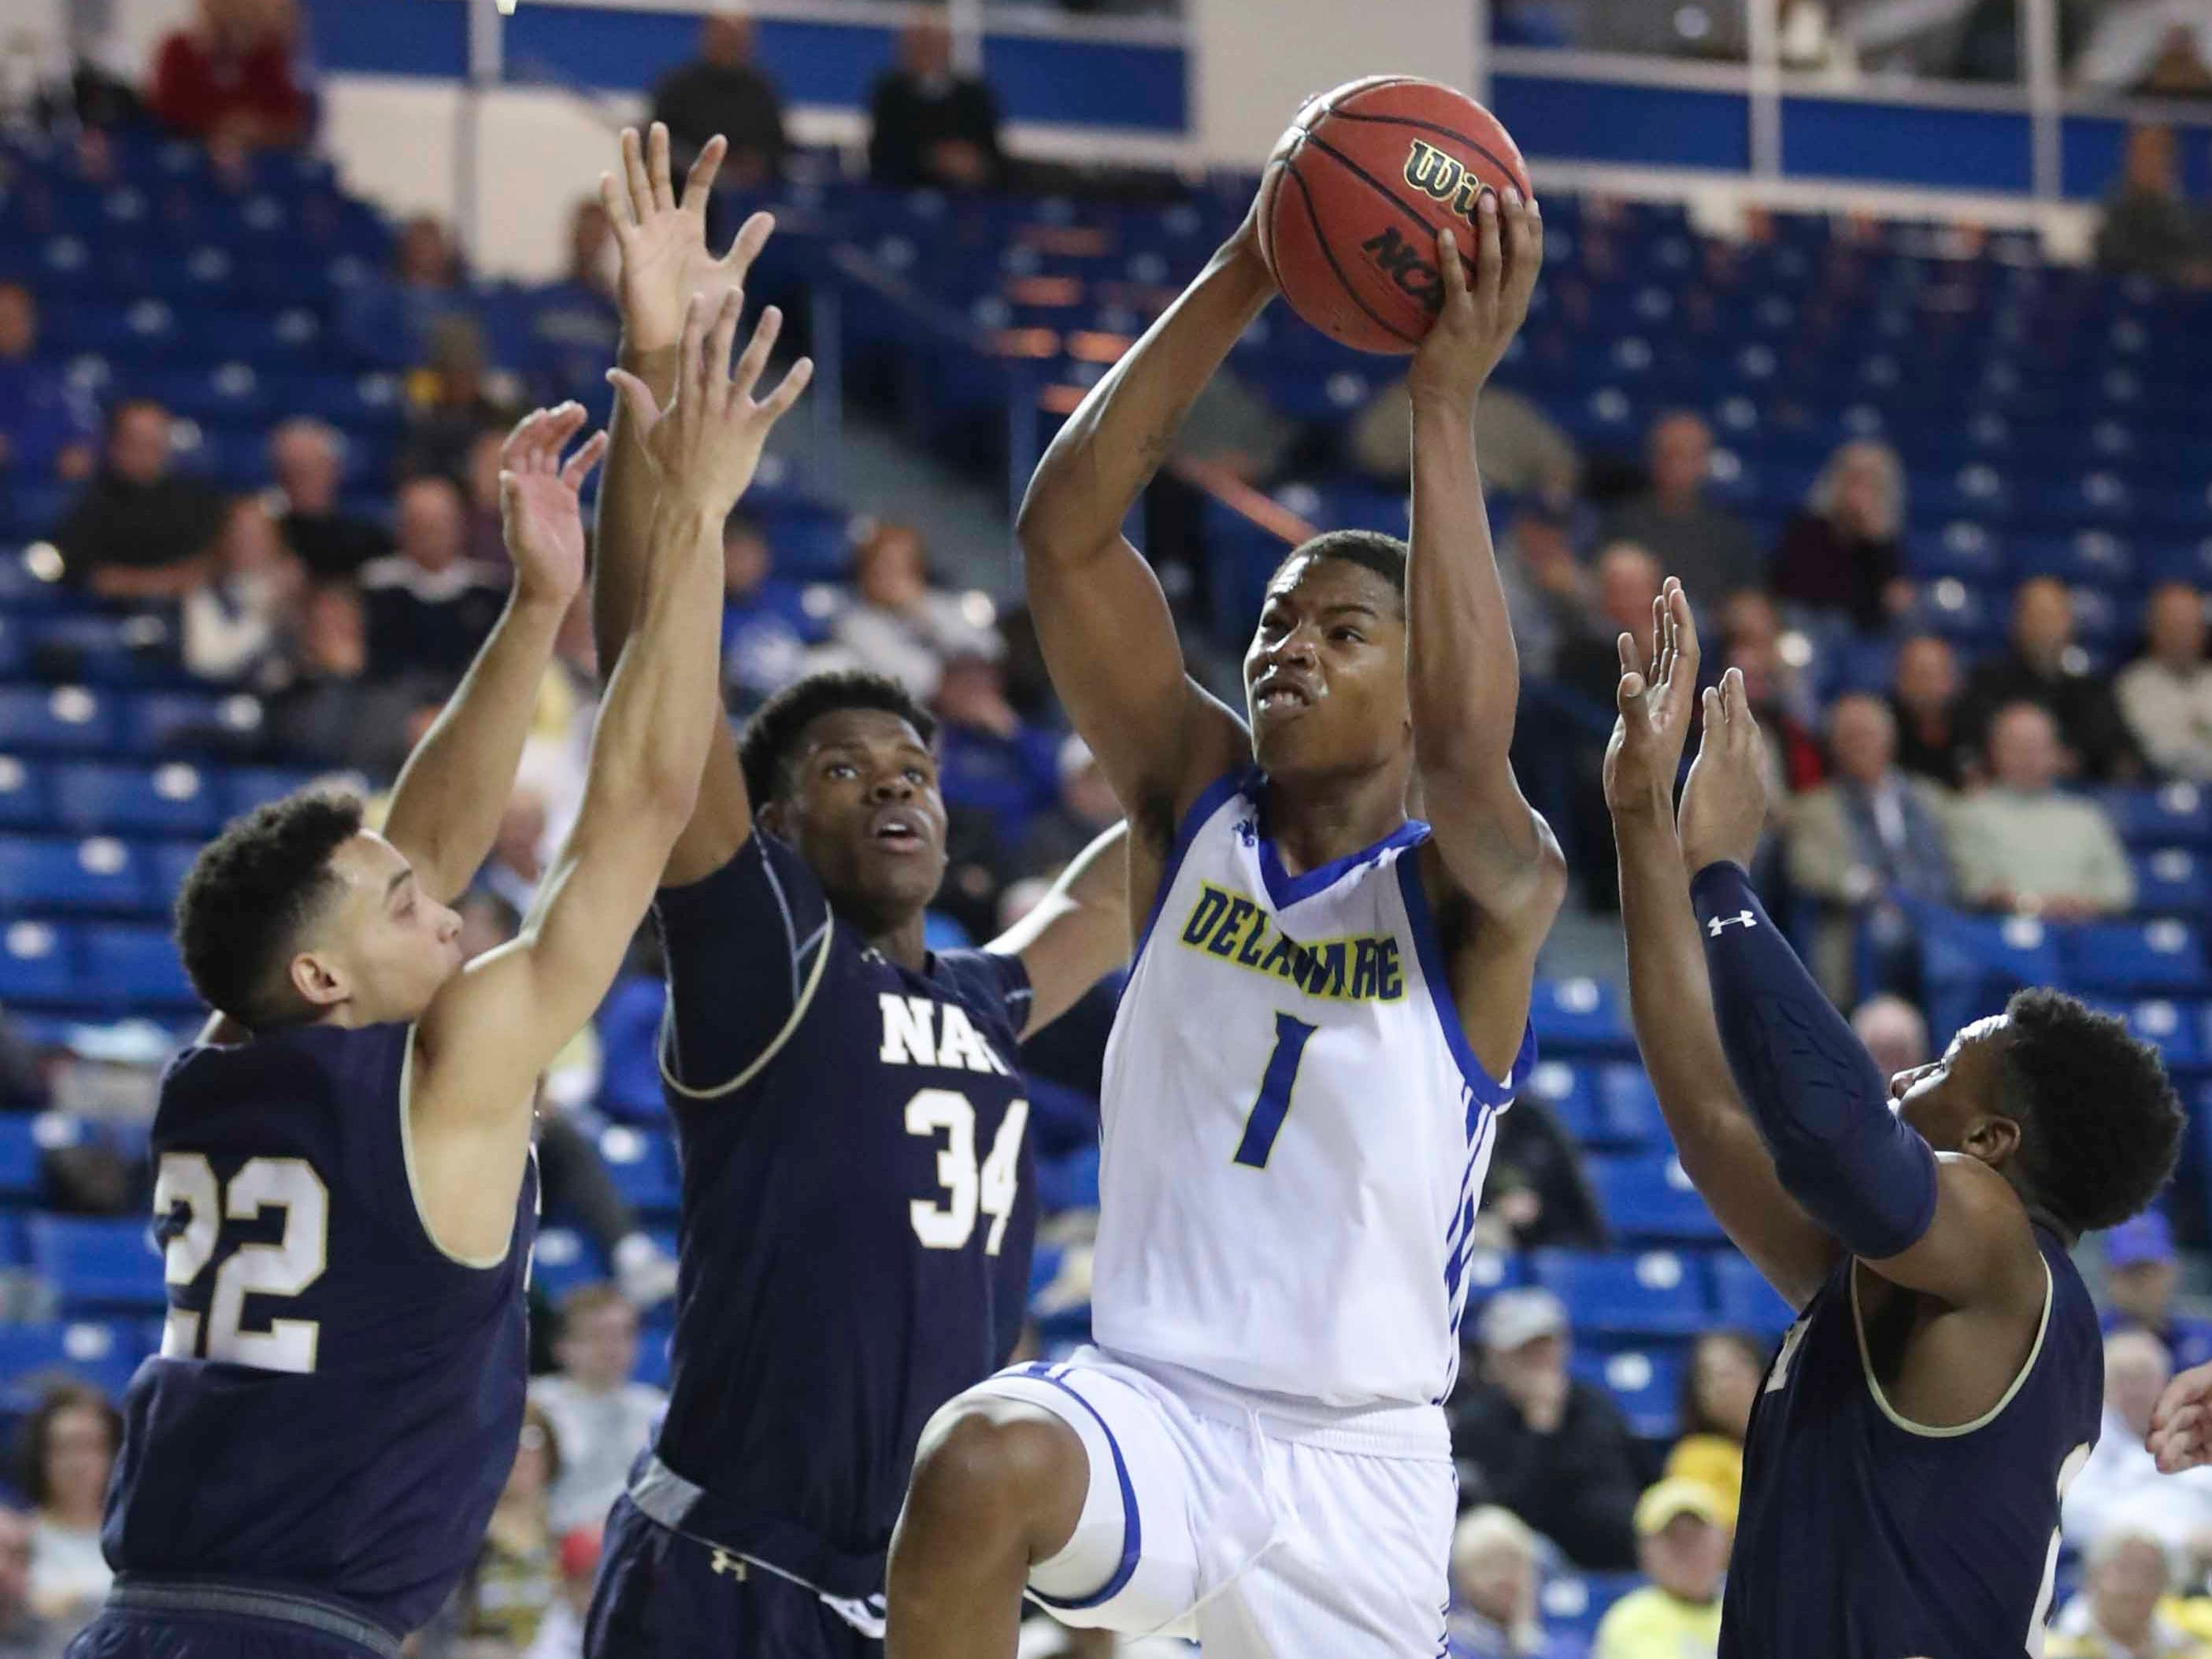 Delaware's Kevin Anderson (1) cuts to the net against Navy's (from left) Cam Davis, Danny Ogele and Hasan Abdullah in the second half of Delaware's 80-65 loss at the Bob Carpenter Center Wednesday.